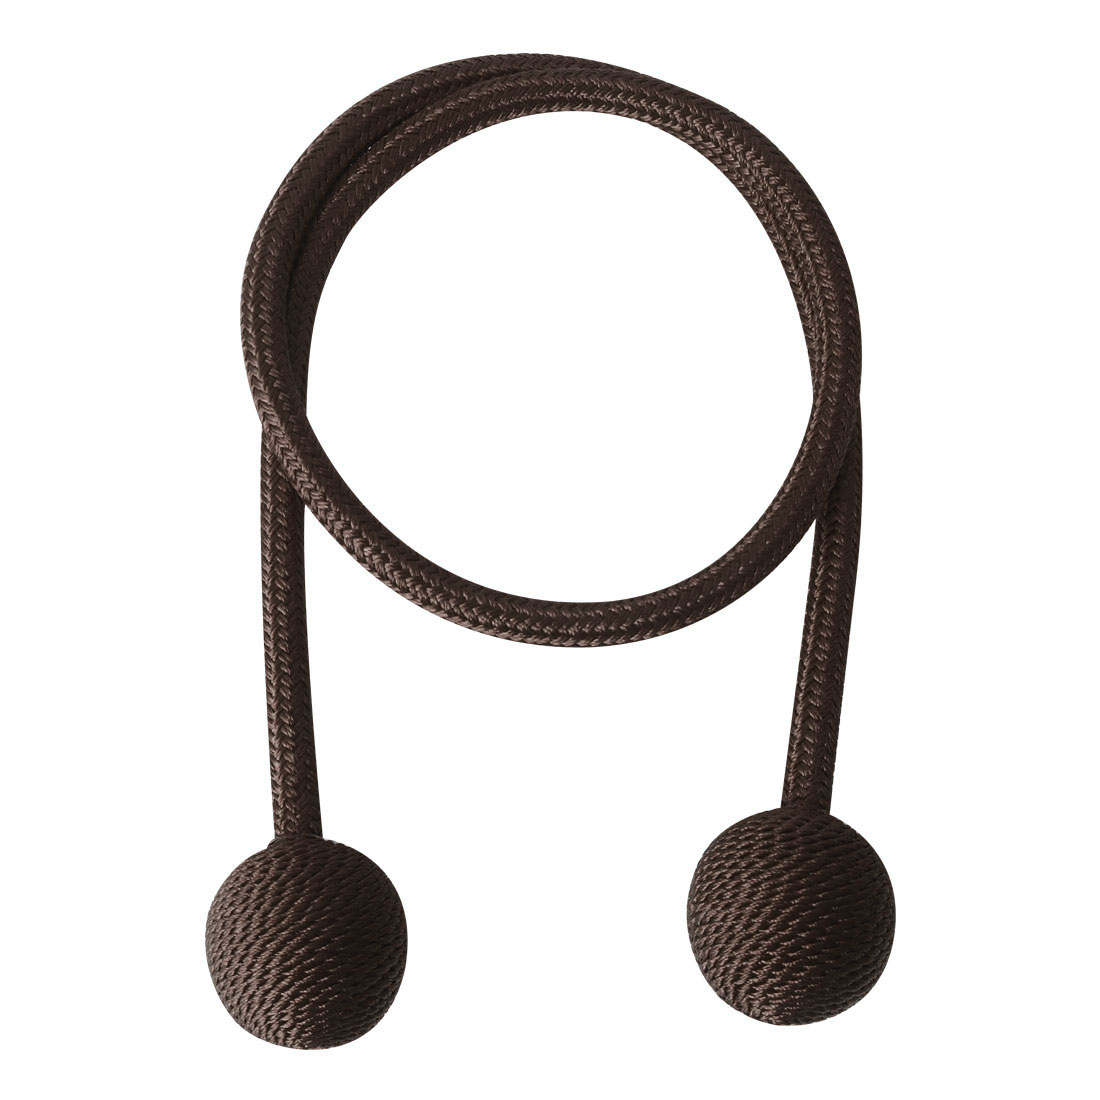 "Curtain Tieback 25.6"" Holdback Decorative Rope Curtain Holders, Chocolate Color"